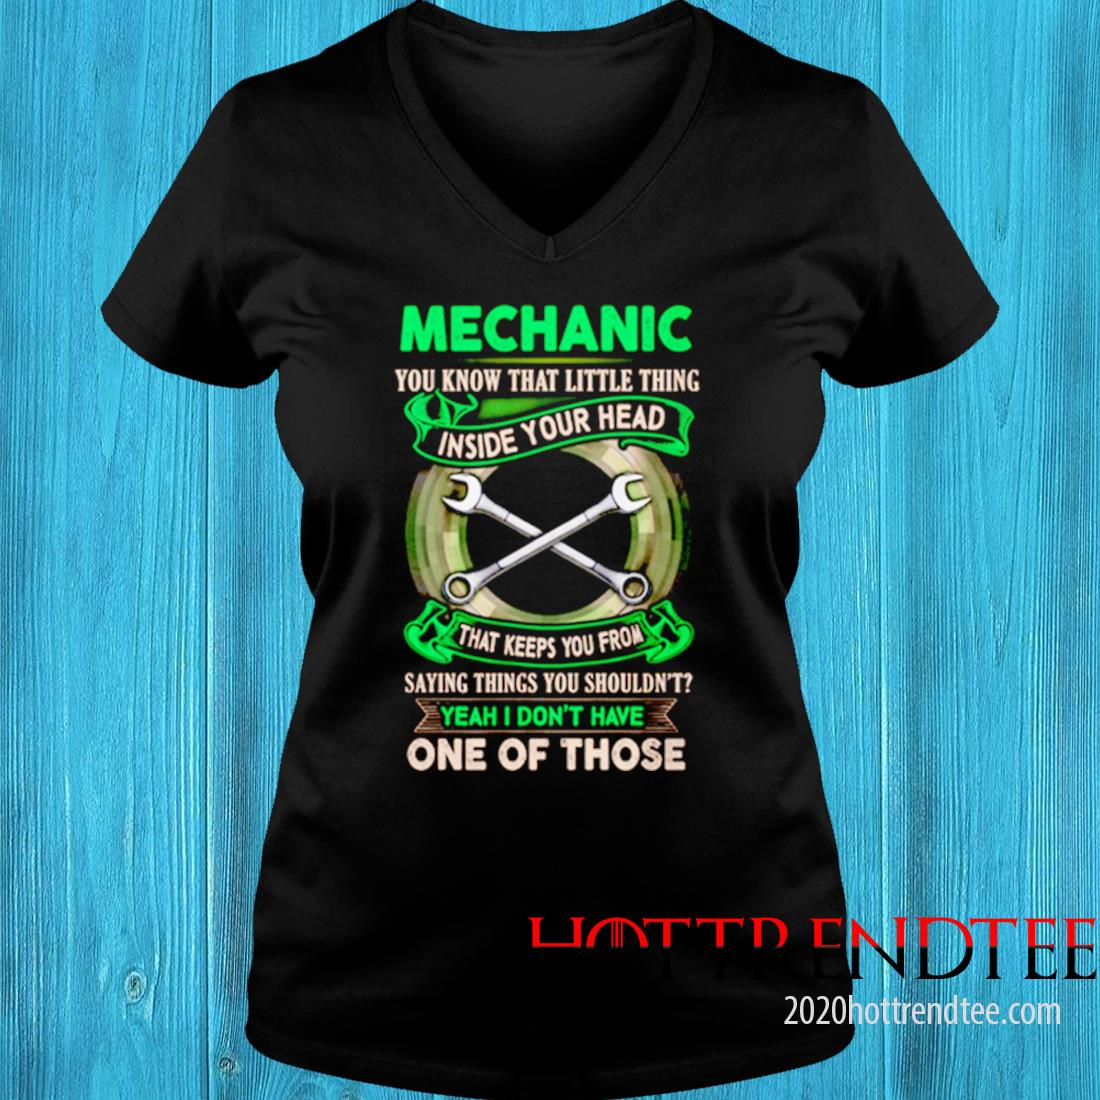 Mechanic You Know That Little Thing Inside Your Head That Keeps You From Saying Things Shirt v-neck tee